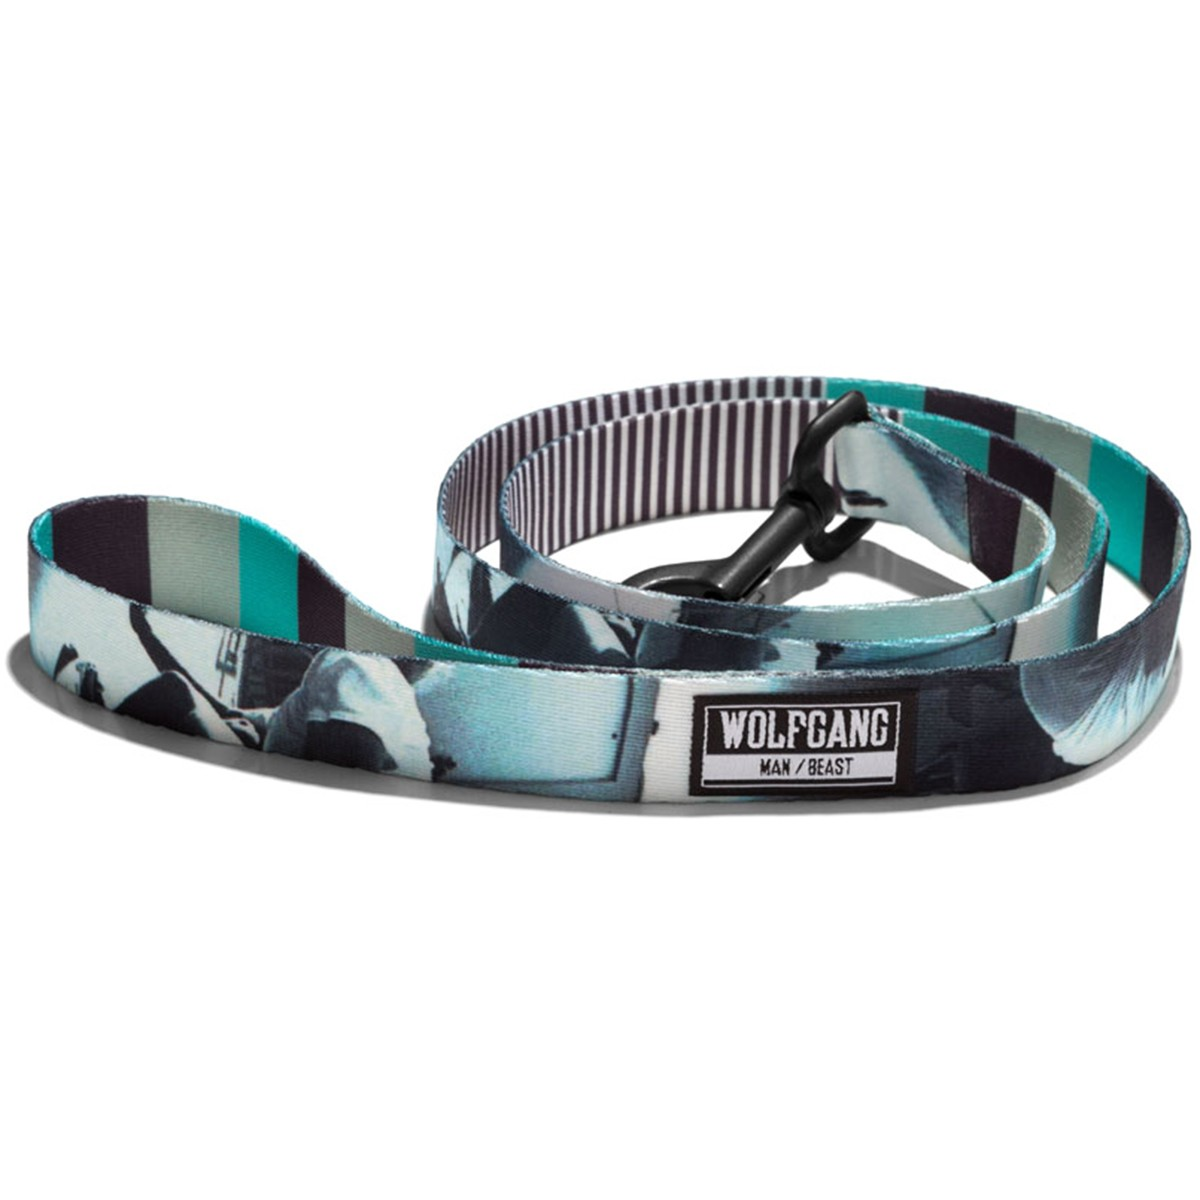 Wolfgang Skate86 Dog Leash  - Photo/Blue - 1in x 6ft